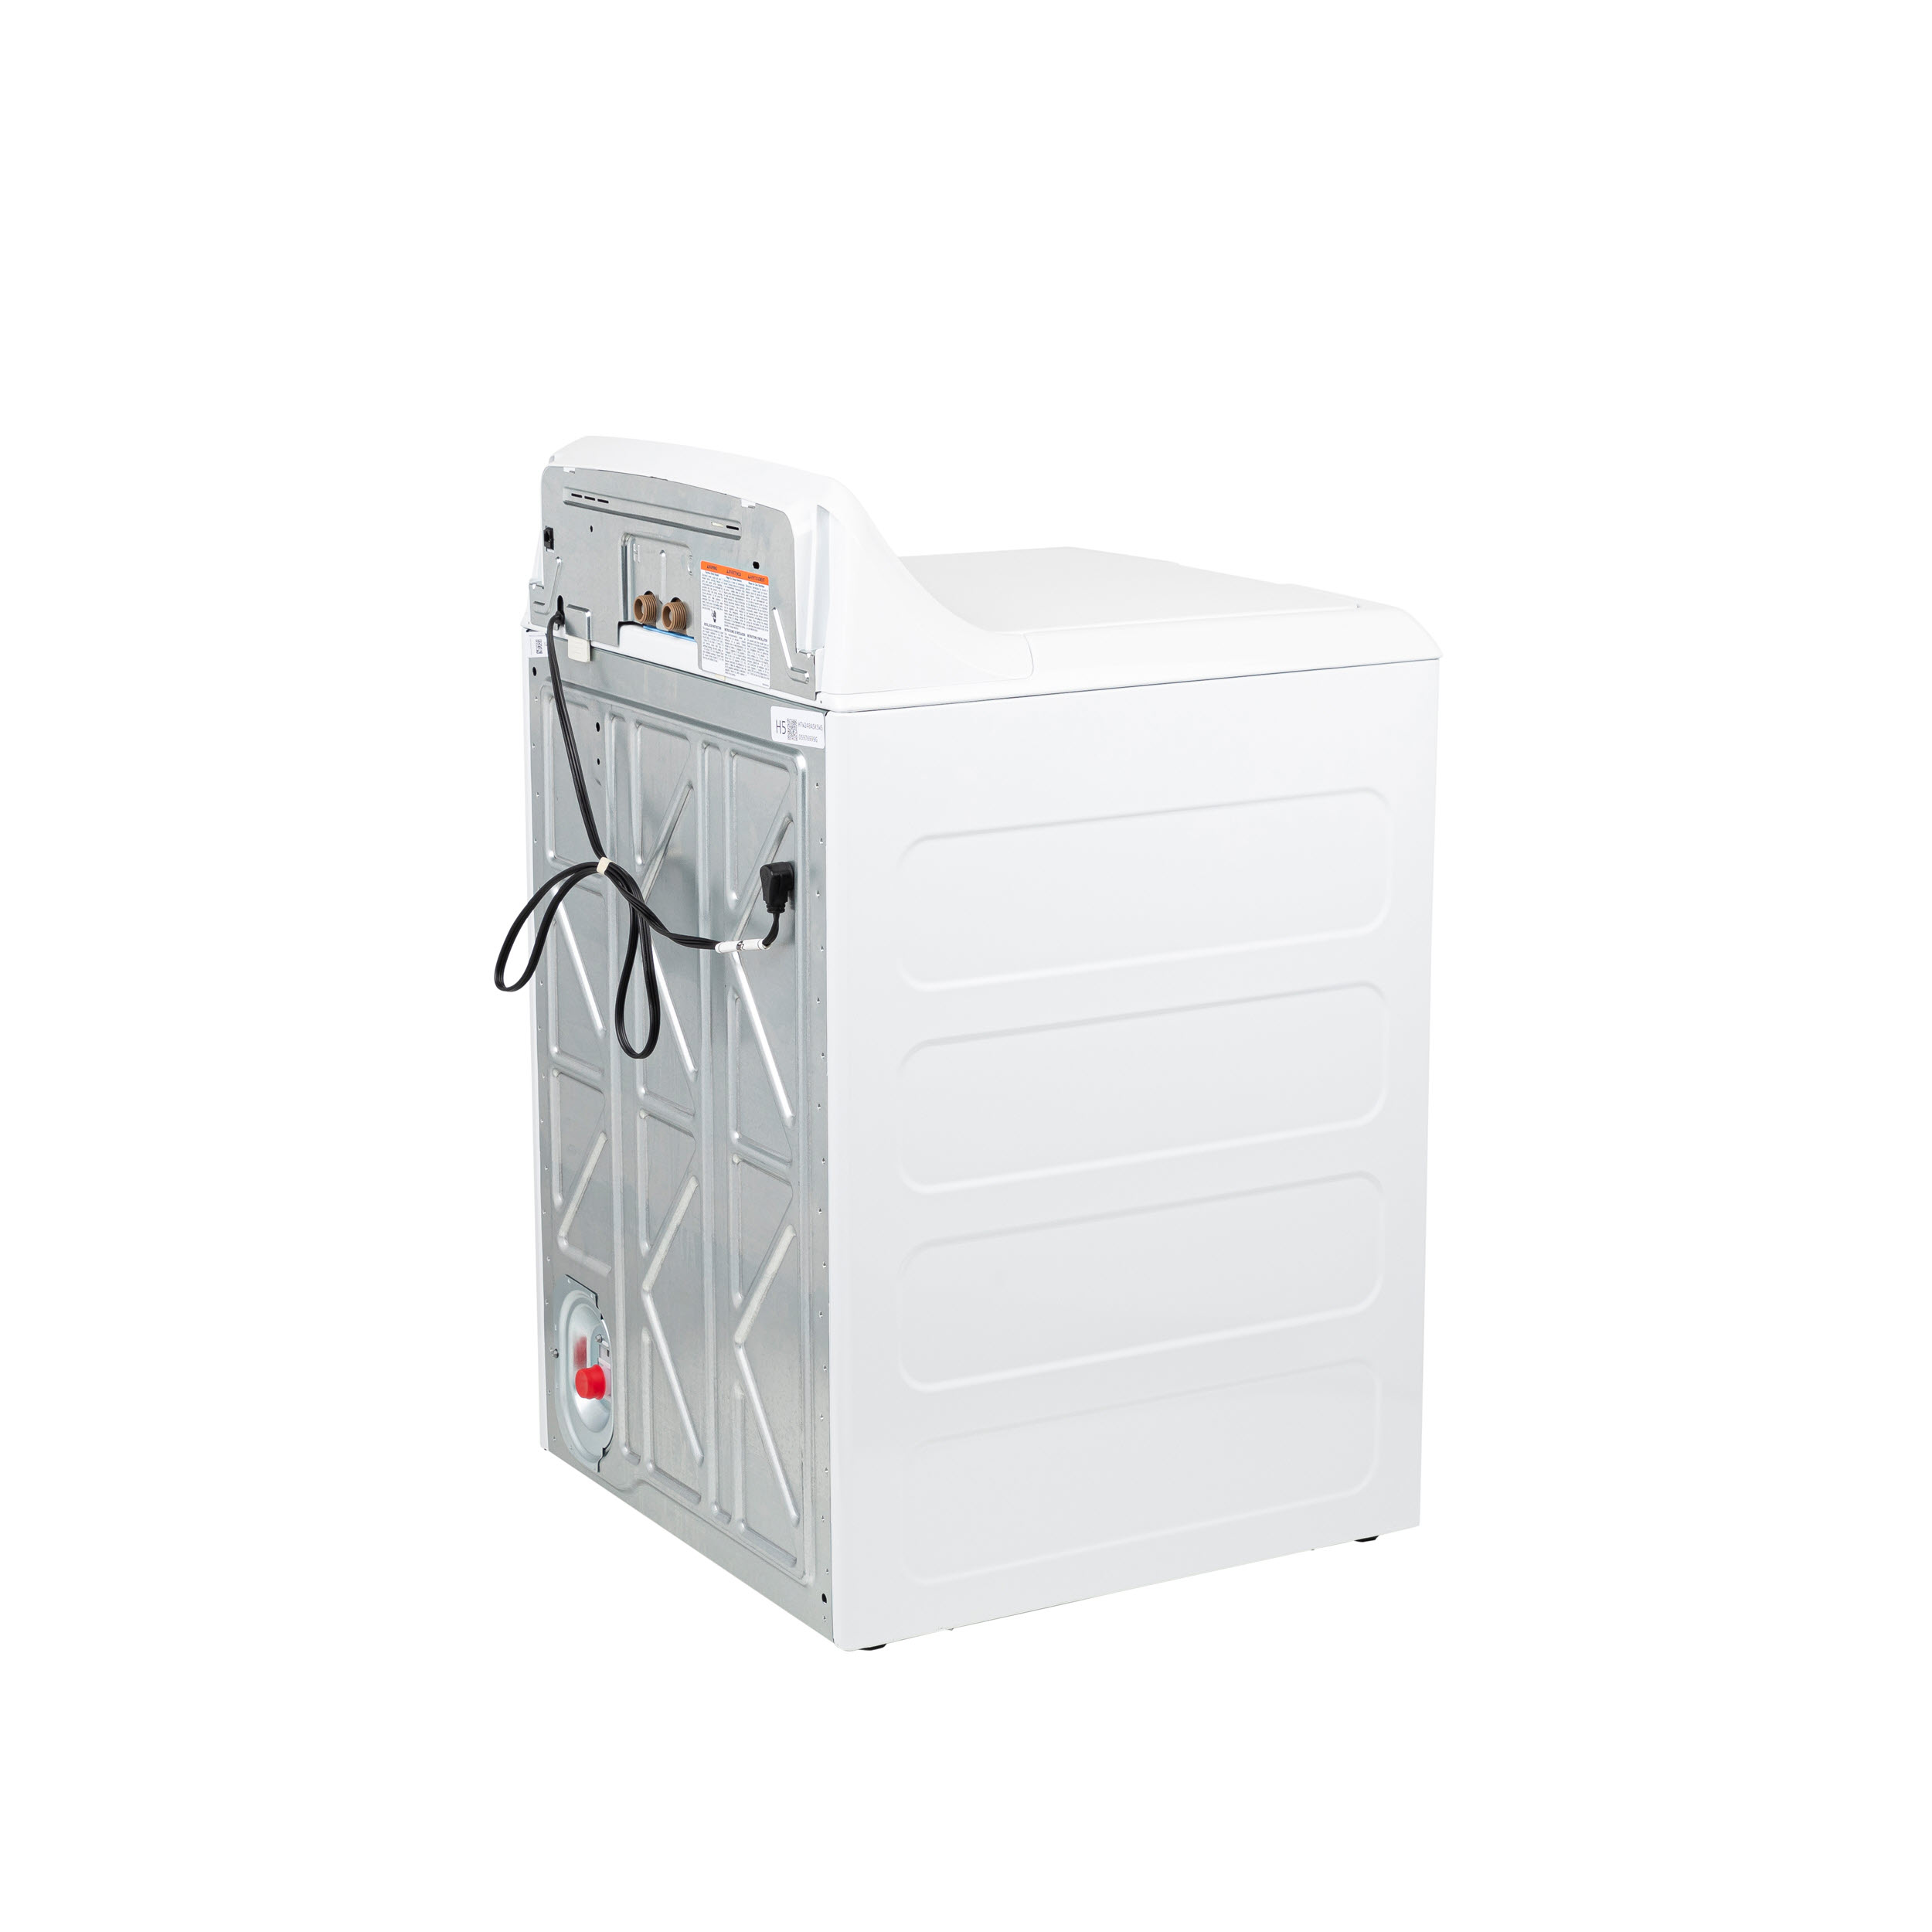 Model: HTW240ASKWS | Hotpoint Hotpoint® 3.8 cu. ft. Capacity Washer with Stainless Steel Basket